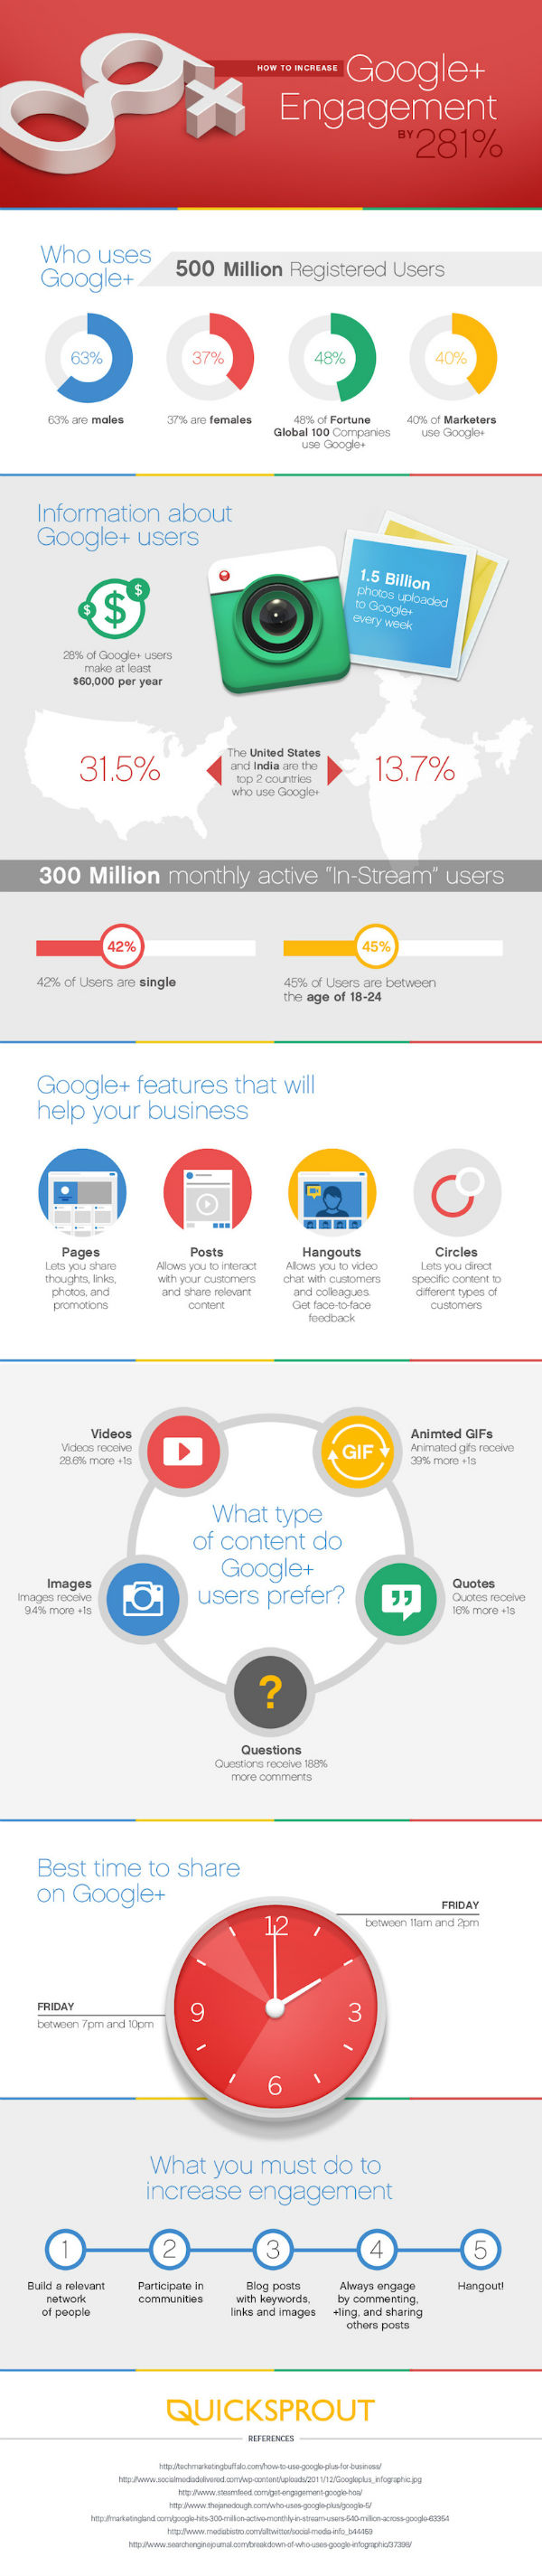 How to Effectively Leverage #Google+ [Infographic] - SocialTimes